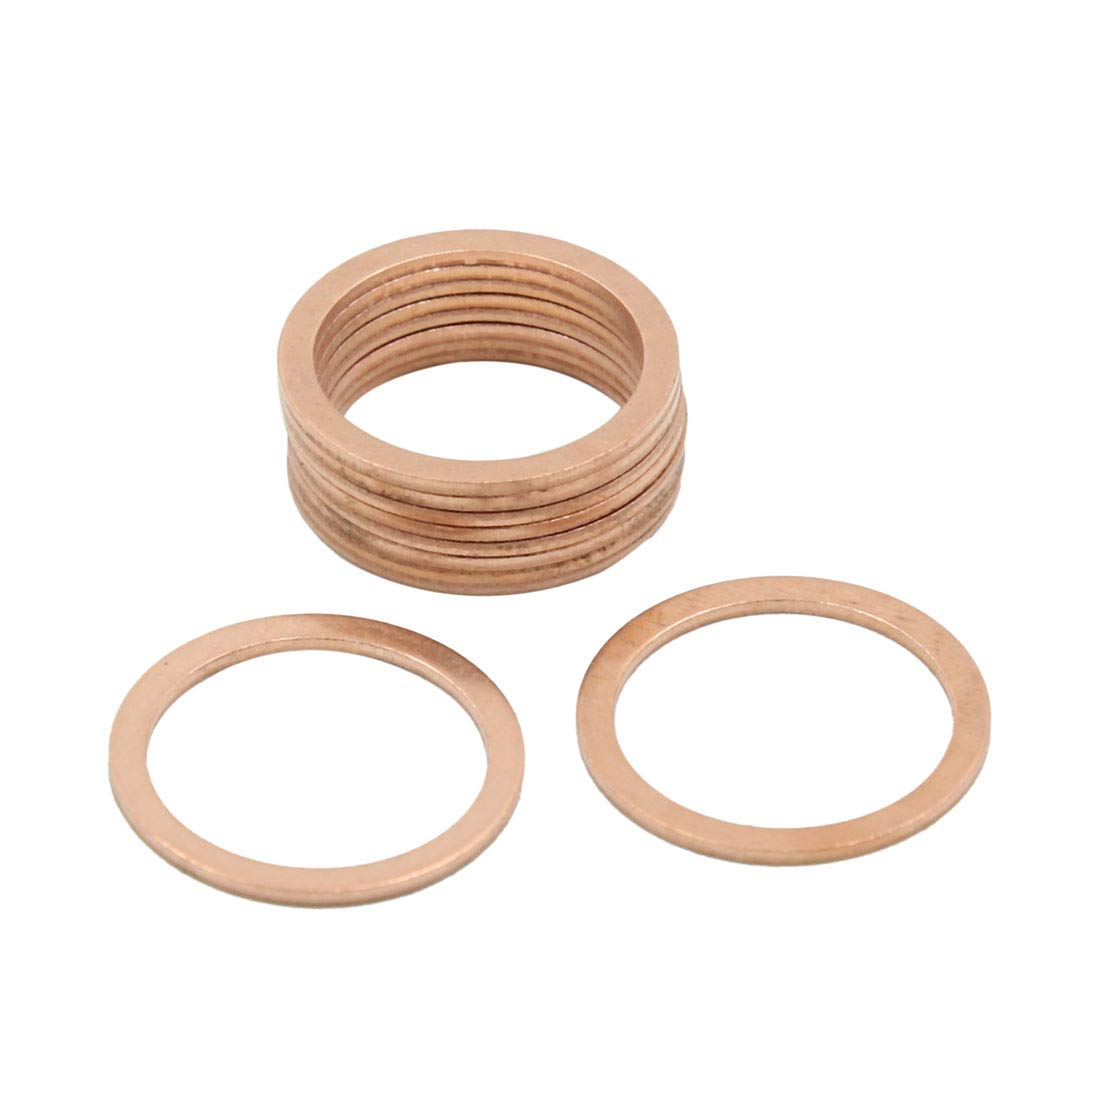 X AUTOHAUX 18mm Inner Diameter Copper Washers Flat Car Sealing Plate Gaskets Rings 10pcs